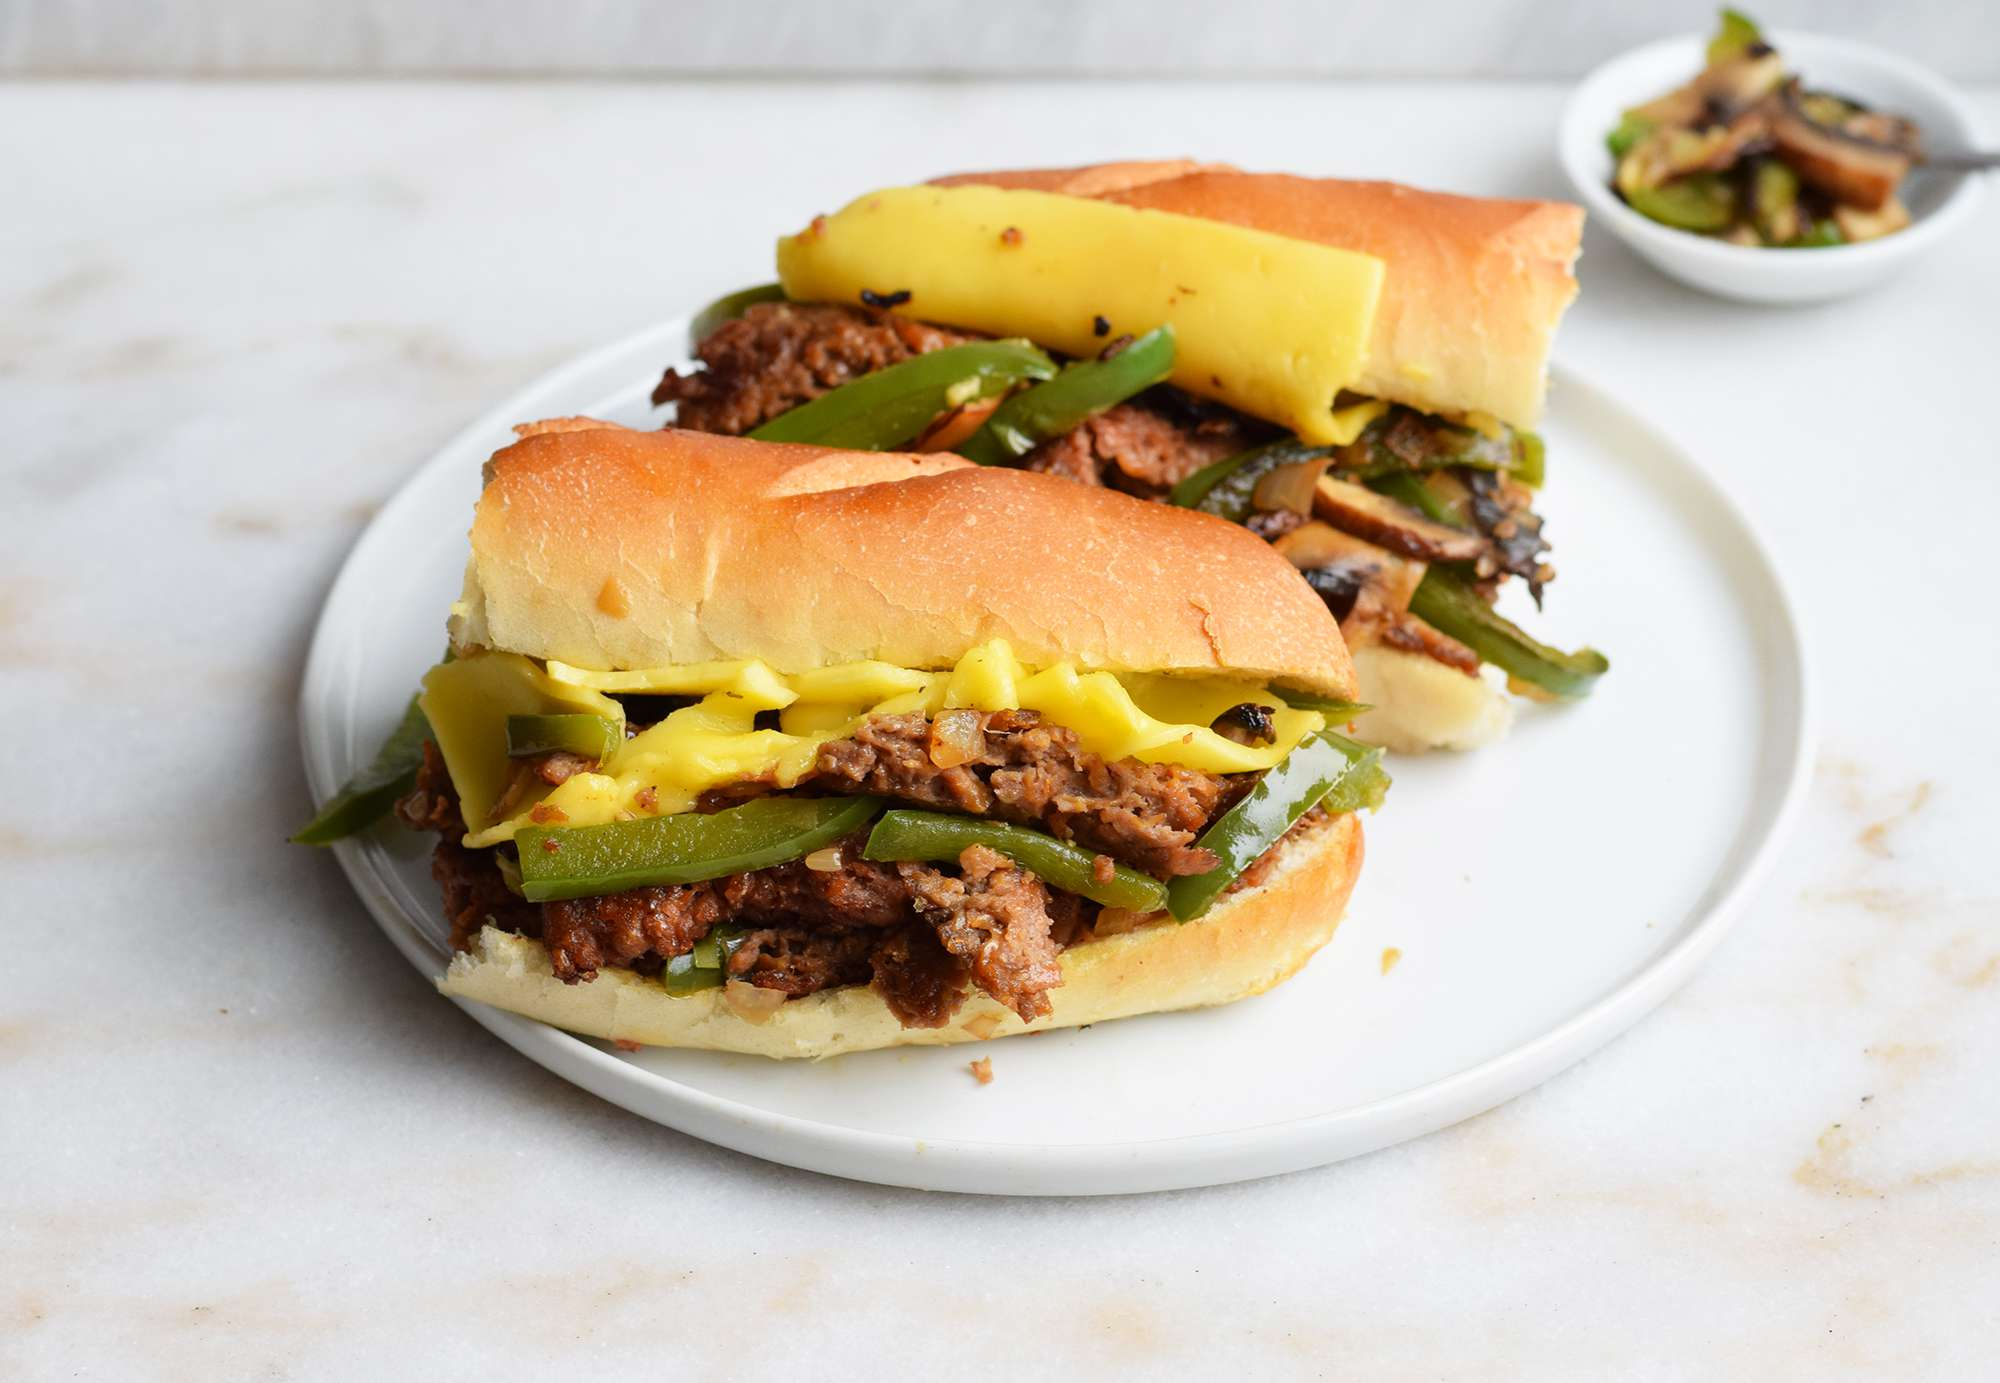 beyond meat Philly cheesesteak on a roll